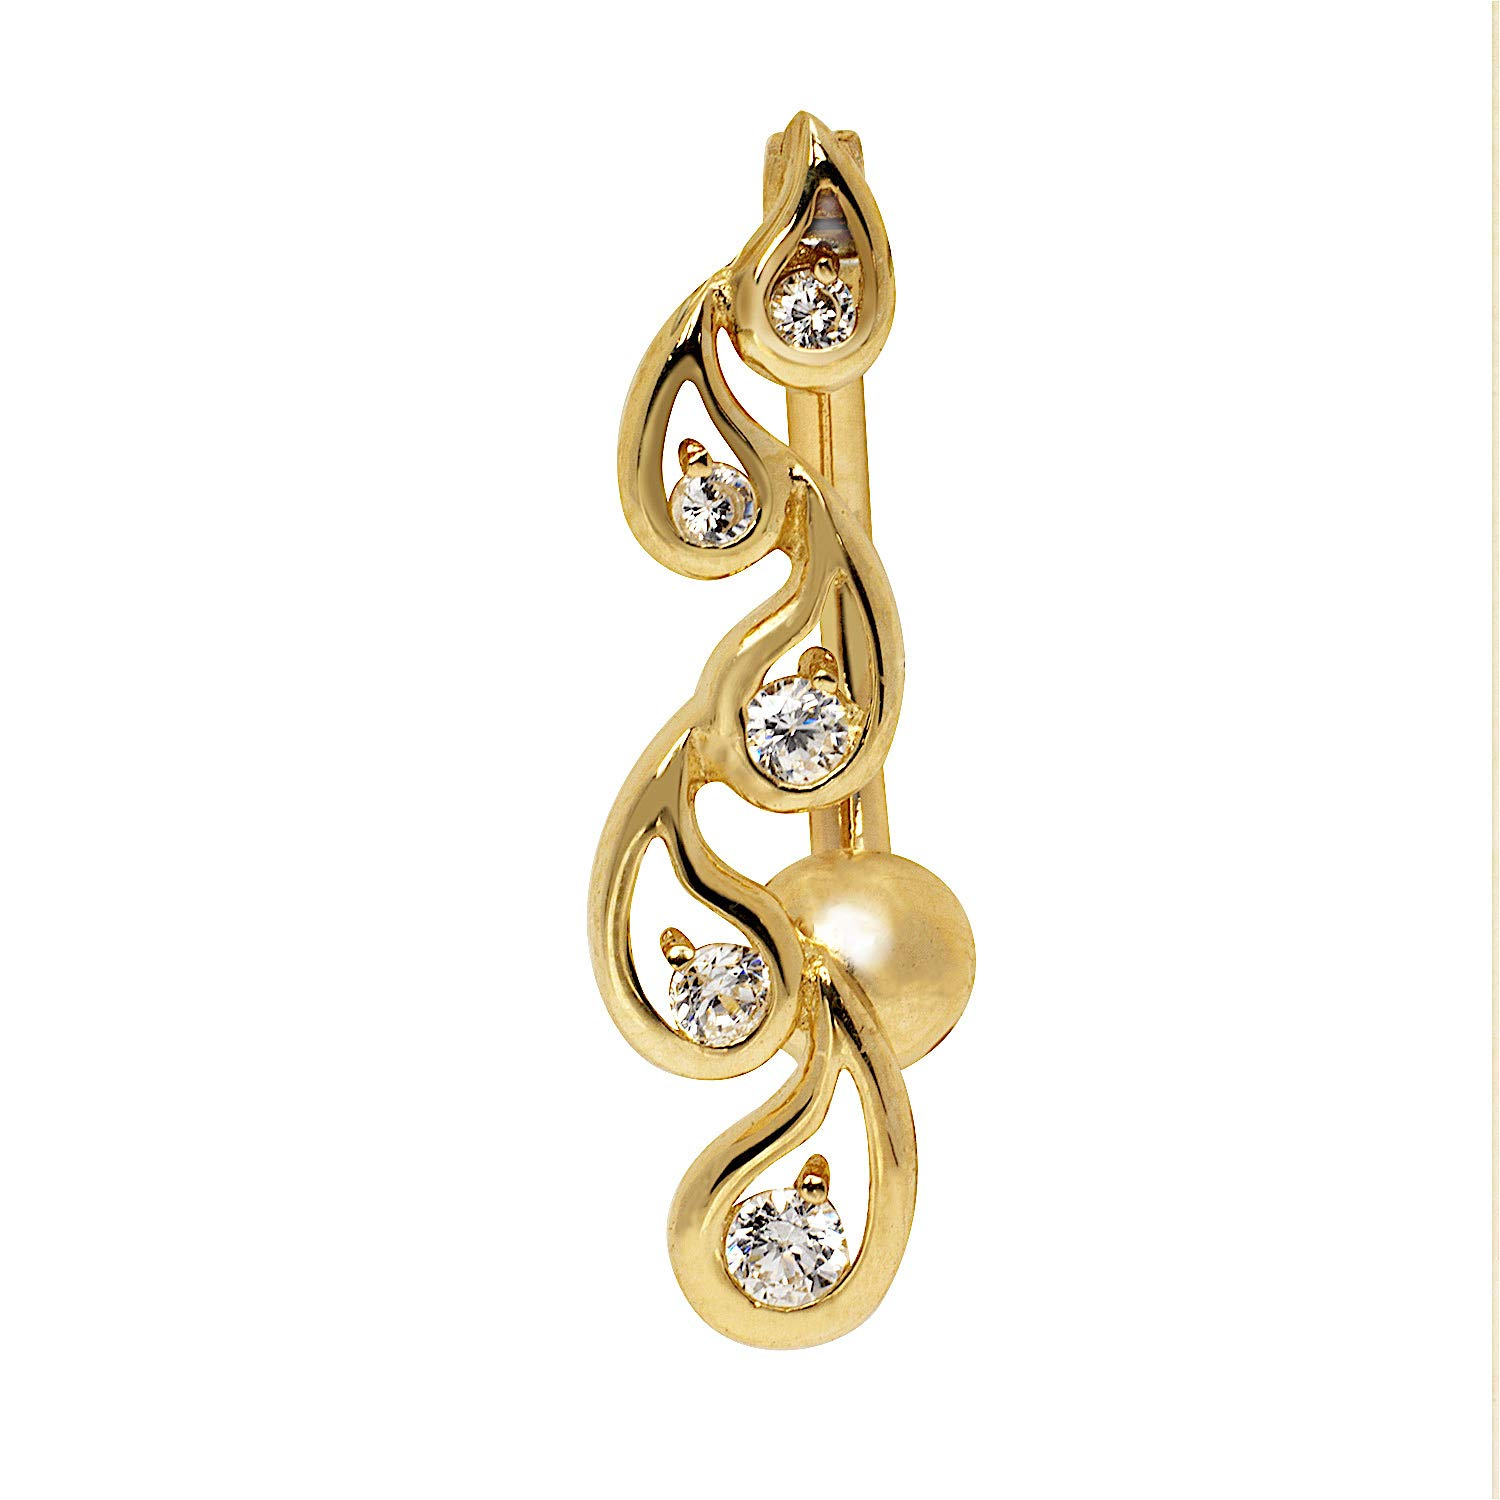 JewelryWeb Solid 14k Yellow or White Gold Journey Tear-Drop Round Cubic Zirconia Top Mount Belly Button Ring Dangle (7mm x 24mm) (Yellow-Gold)